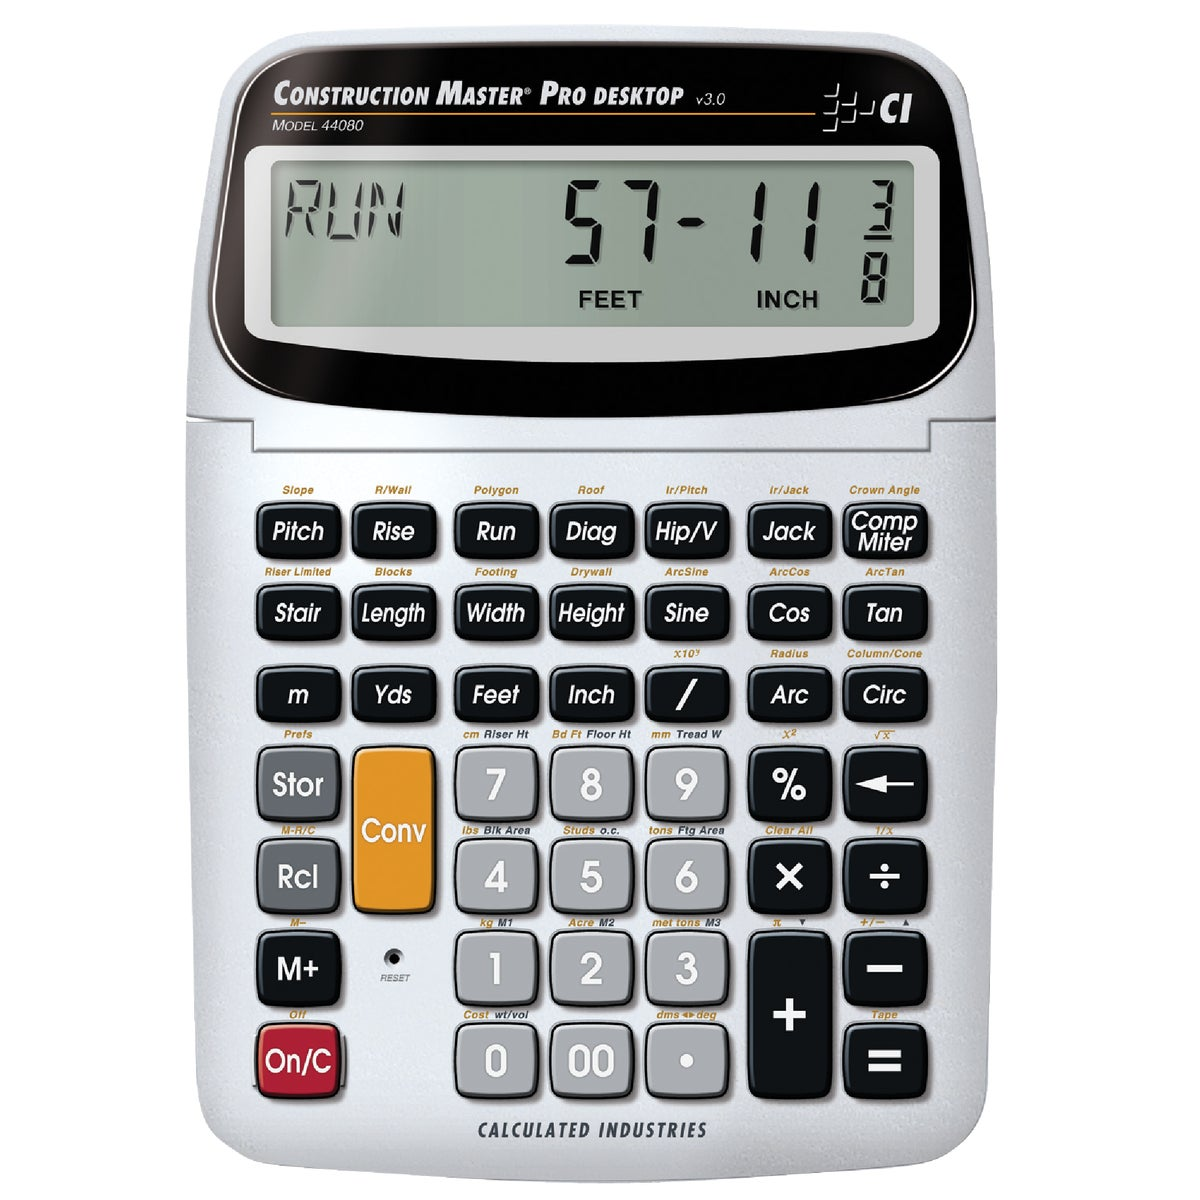 DT CONSTRUCTN CALCULATOR - 44080 by Calculated Ind